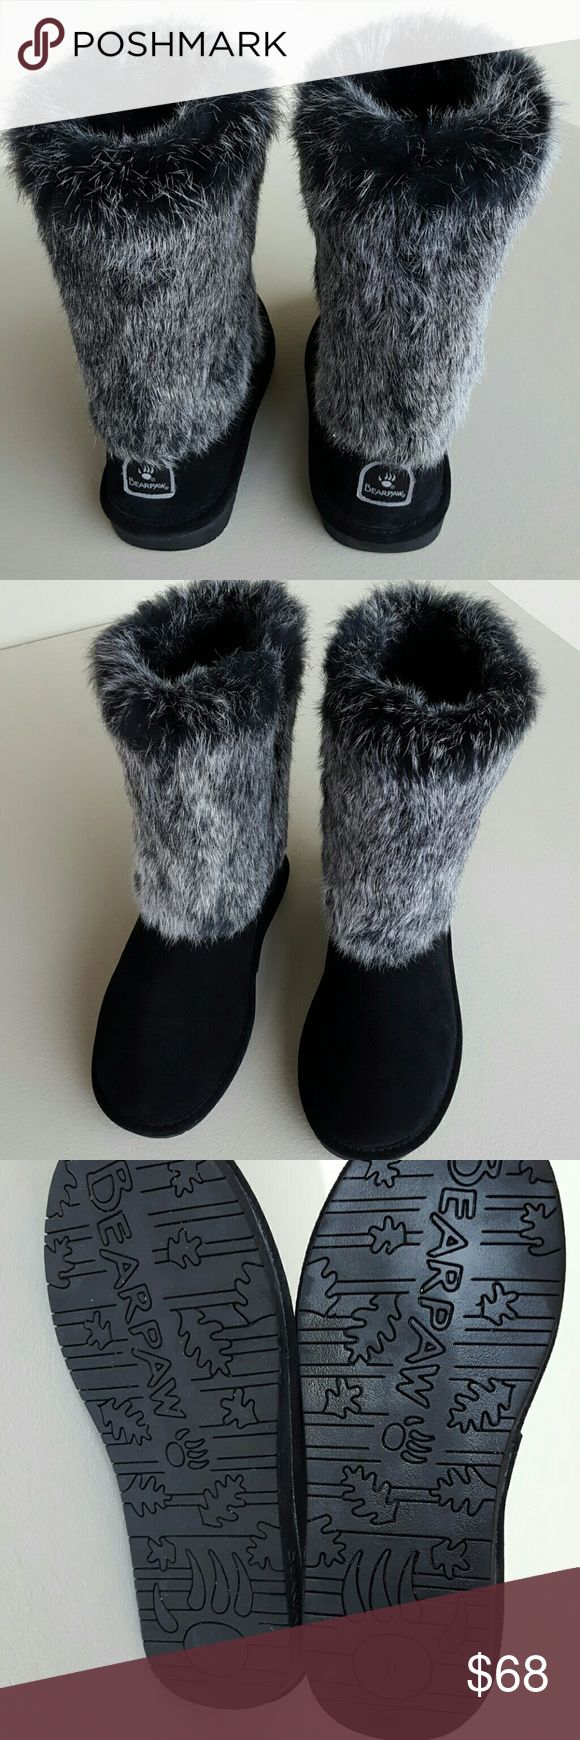 "Bearpaw Boots with Fur BEARPAW Fur Boots  Perfect Condition  Clean  10"" high  No trades Please Bearpaw  Shoes"